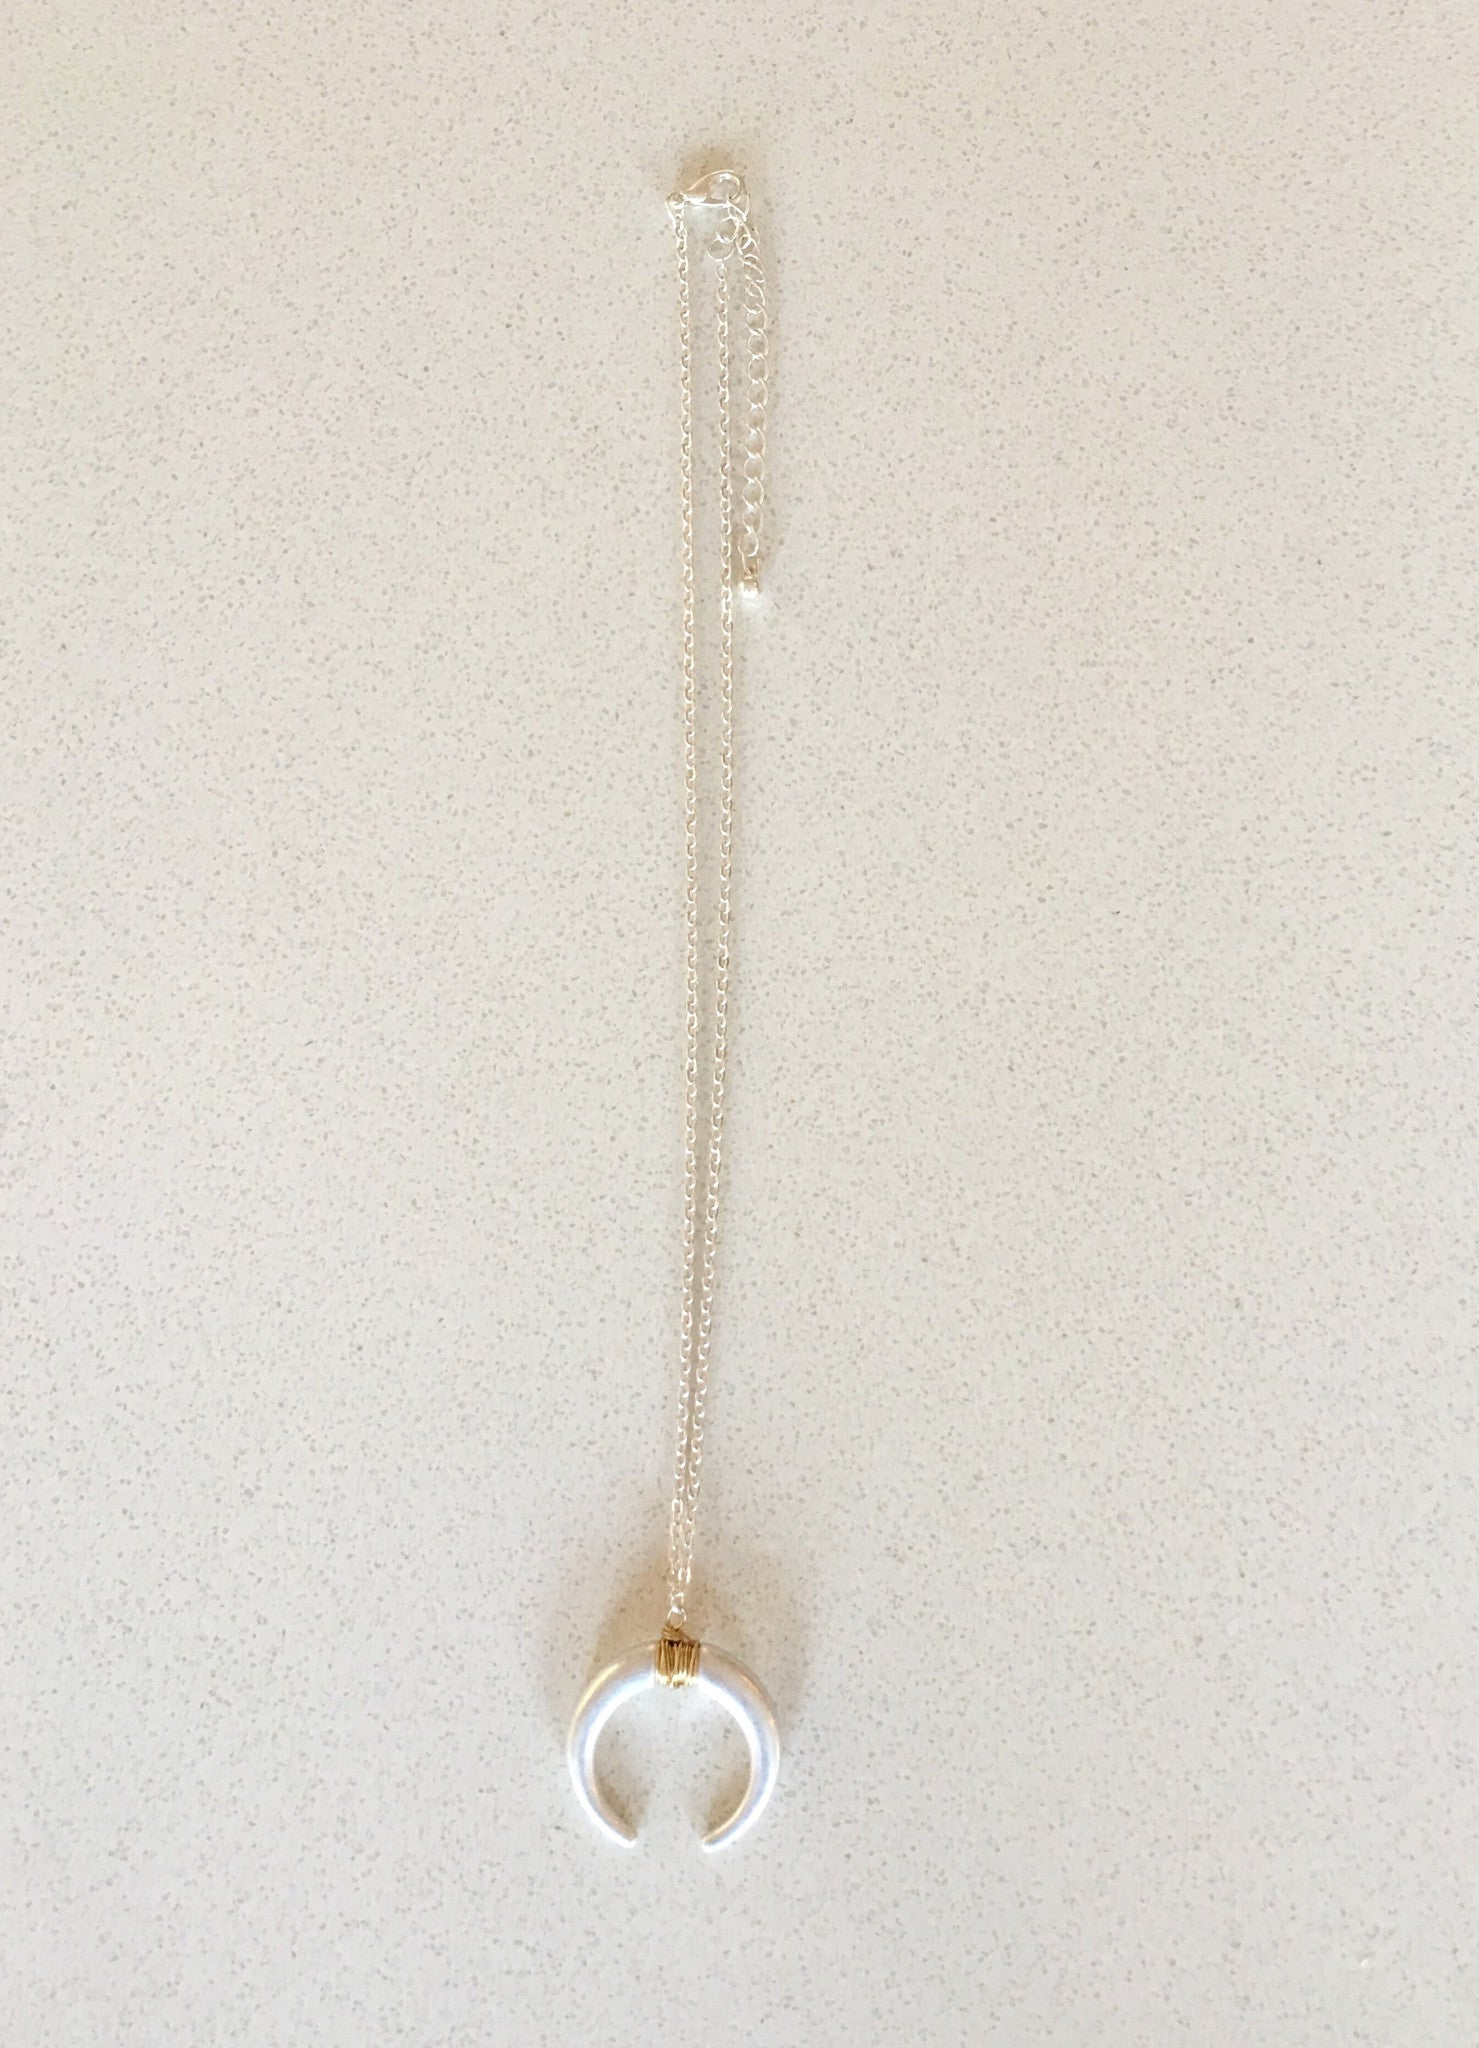 Silver or Gold Pendant Necklace